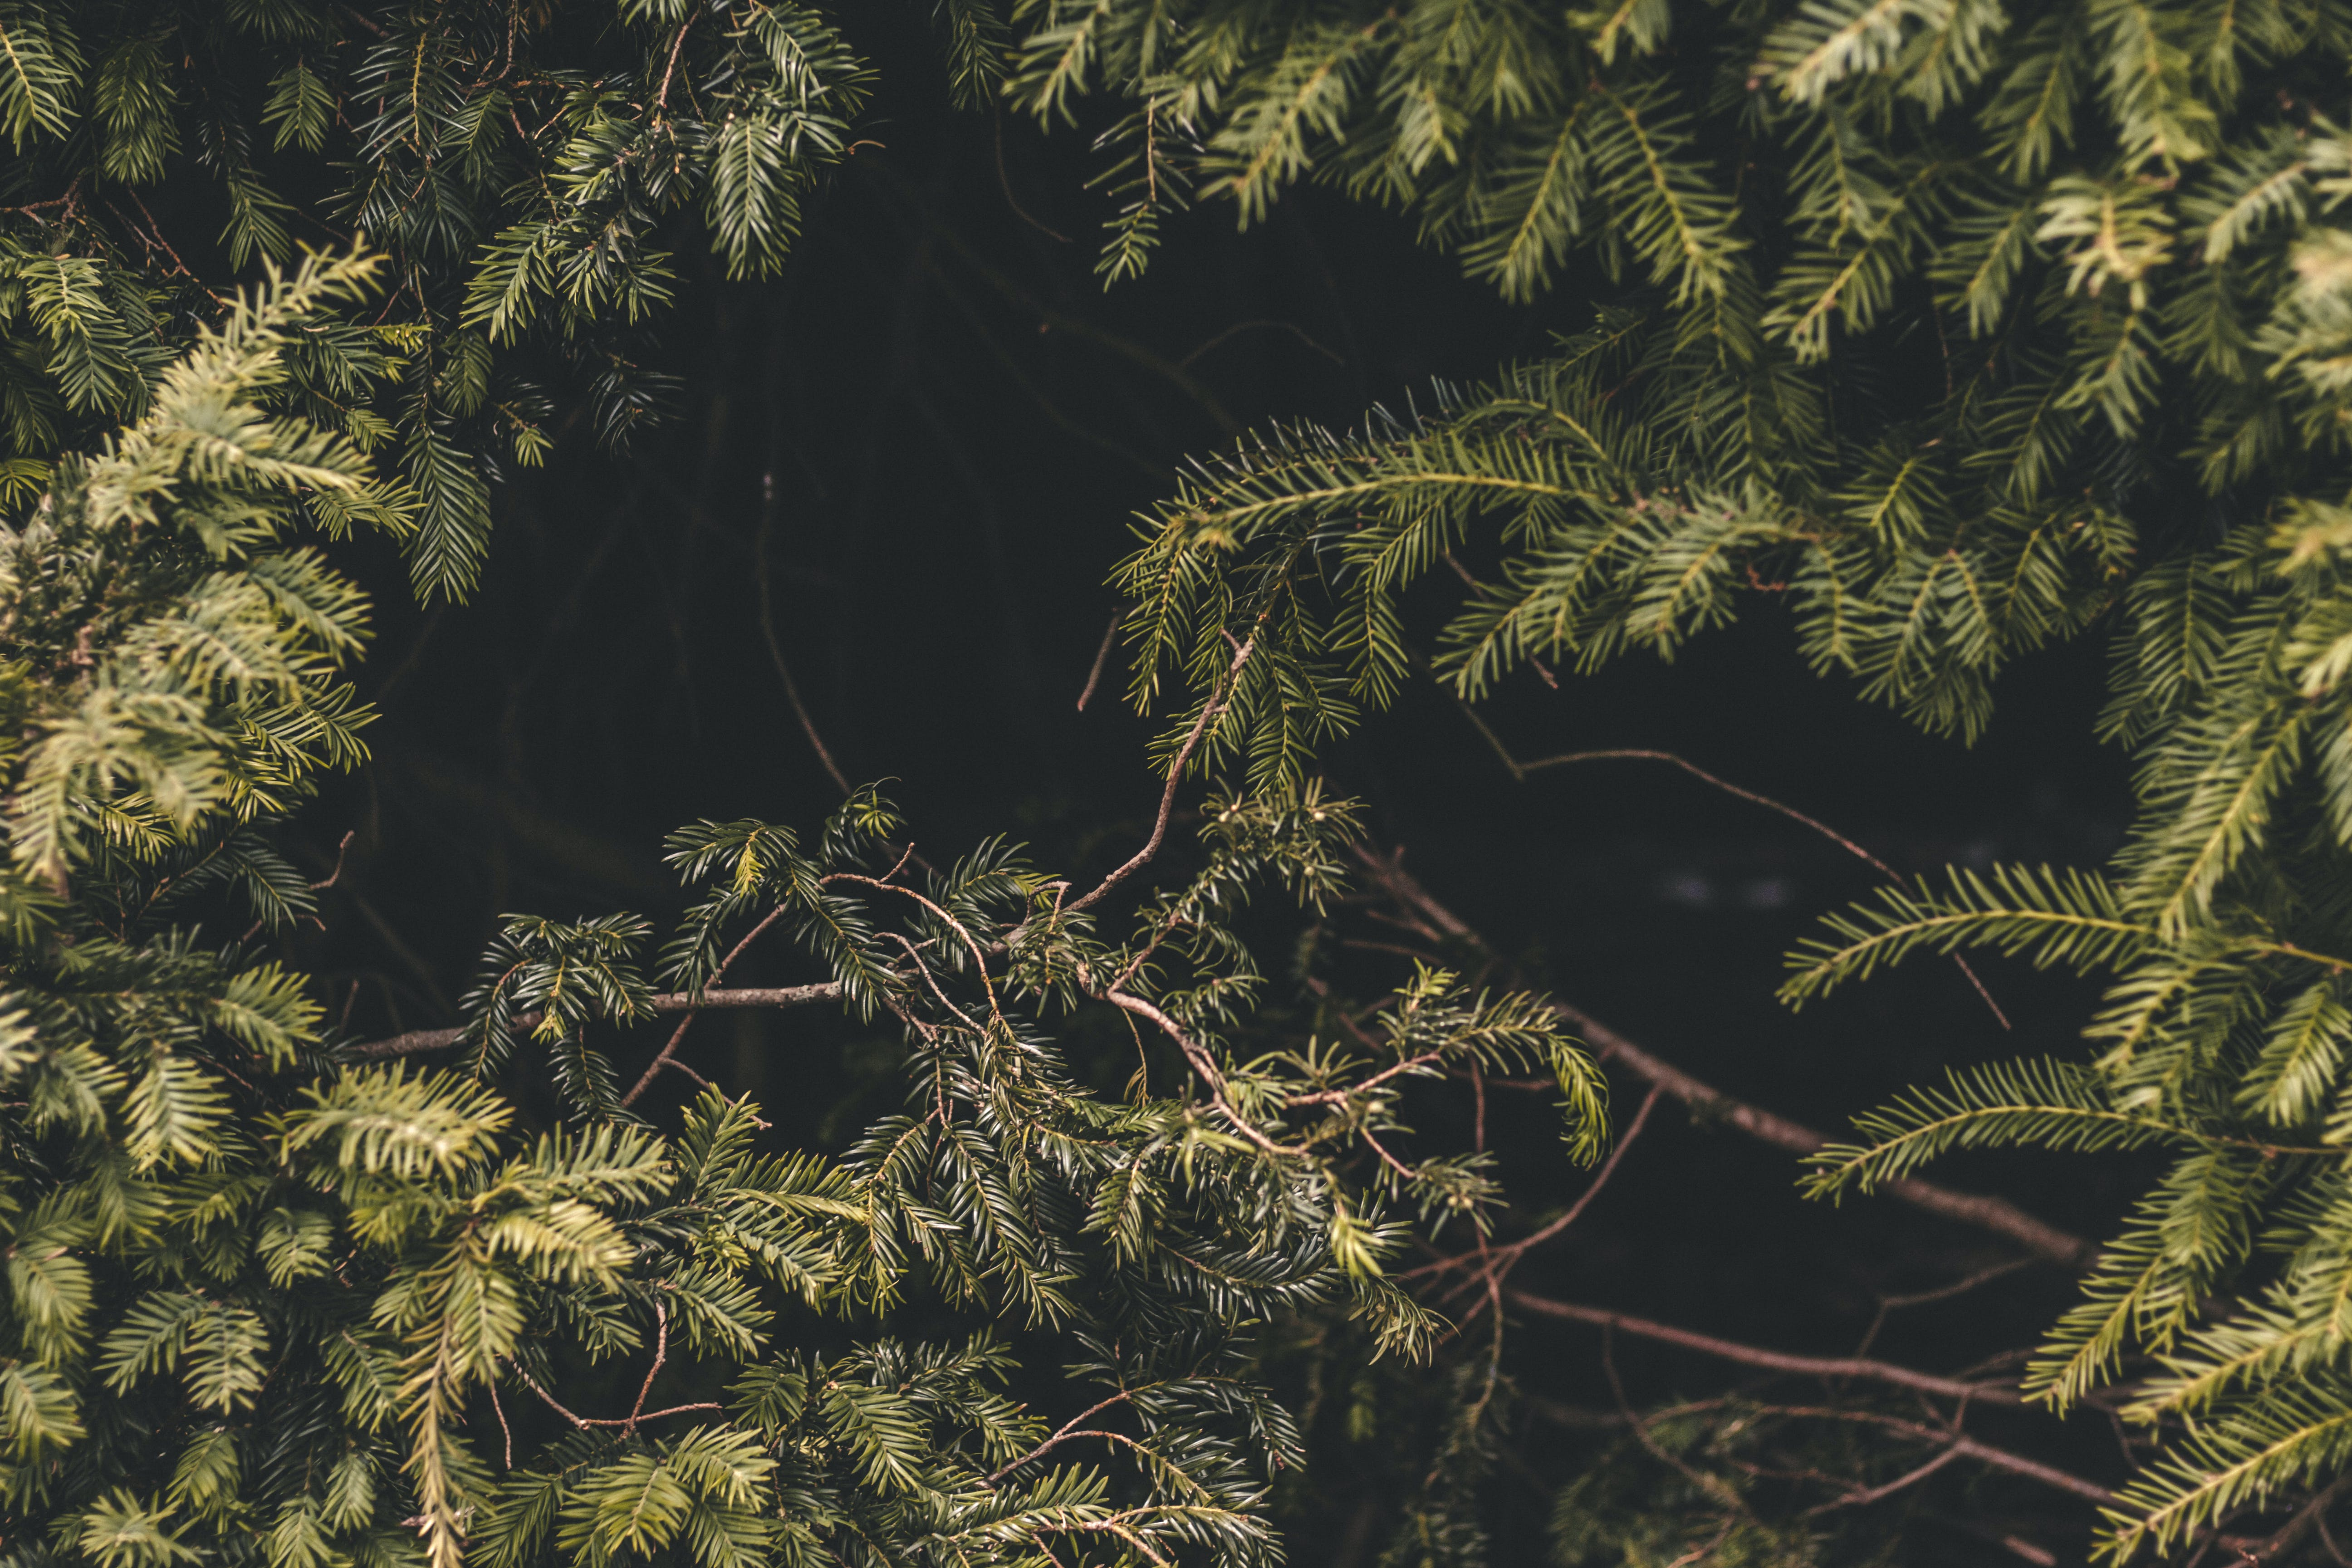 Shallow Photography of Green Trees